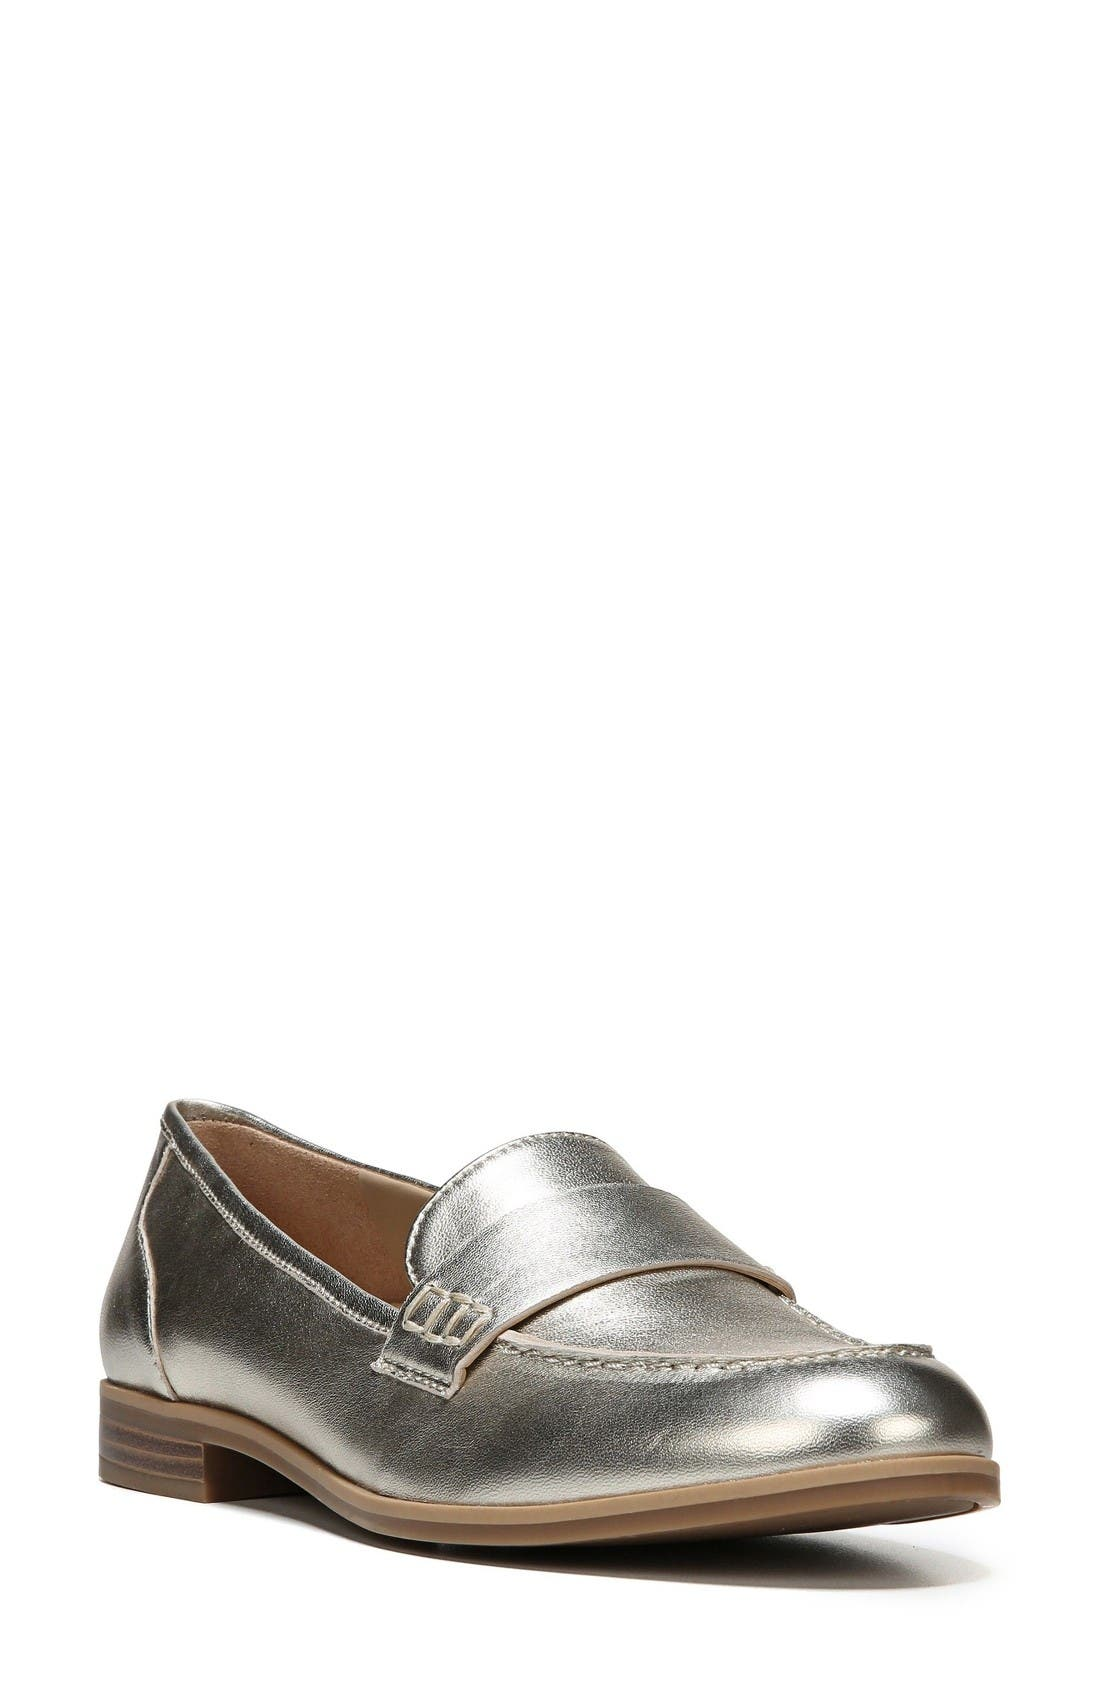 Veronica Loafer,                         Main,                         color, Platina Leather